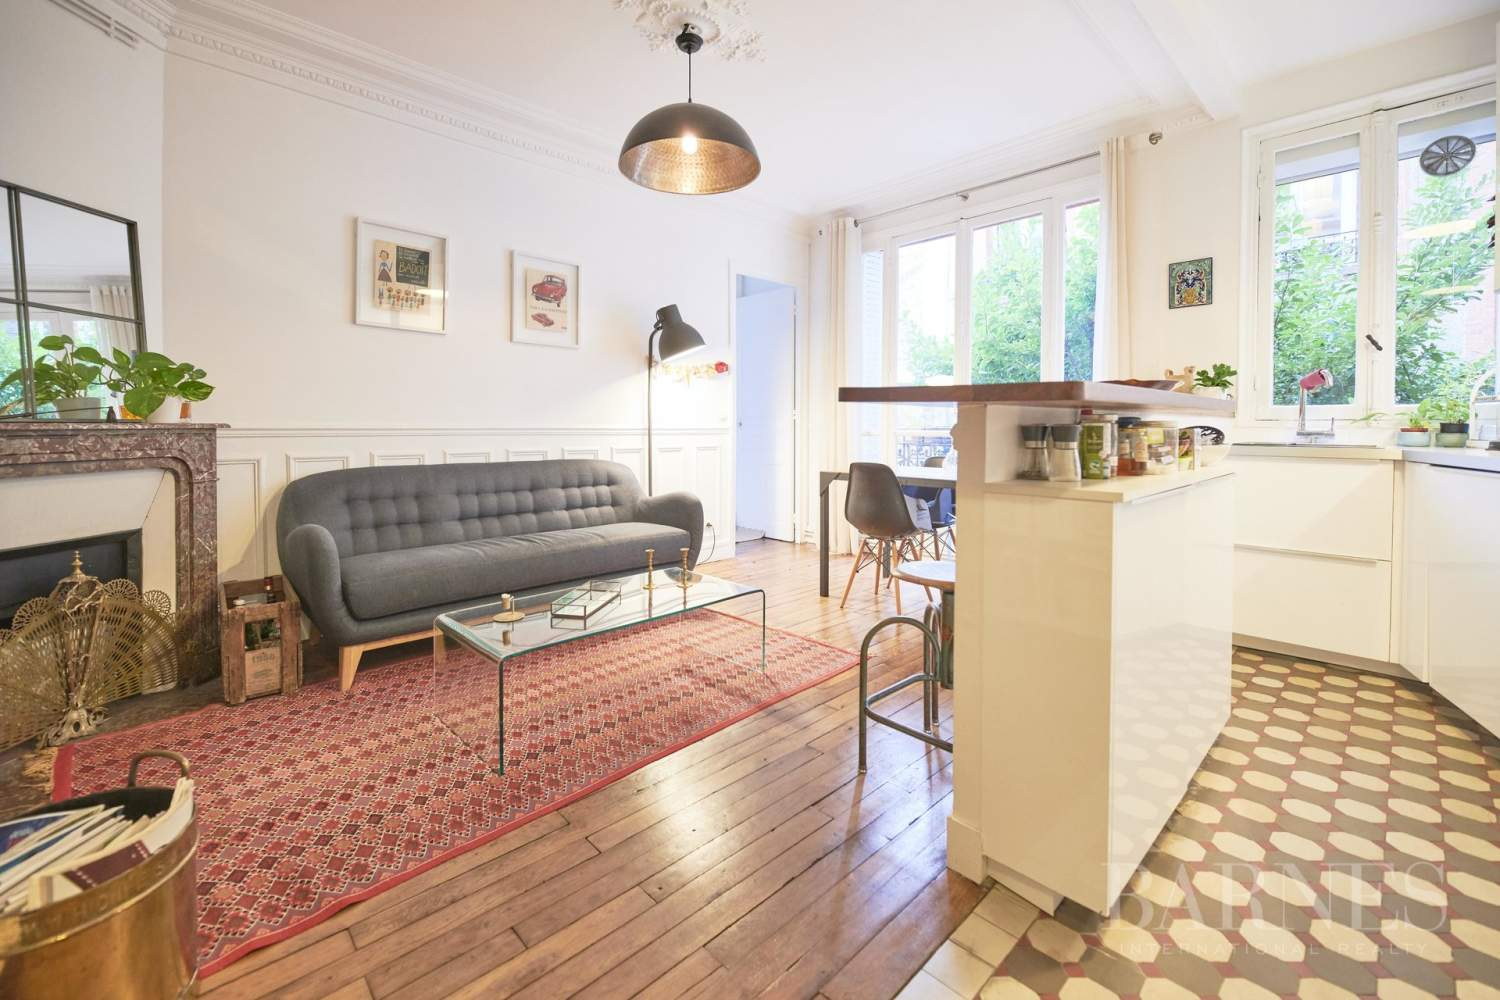 Barnes Boulogne Exclusive - Old apartment with charm - 2 bedrooms picture 6